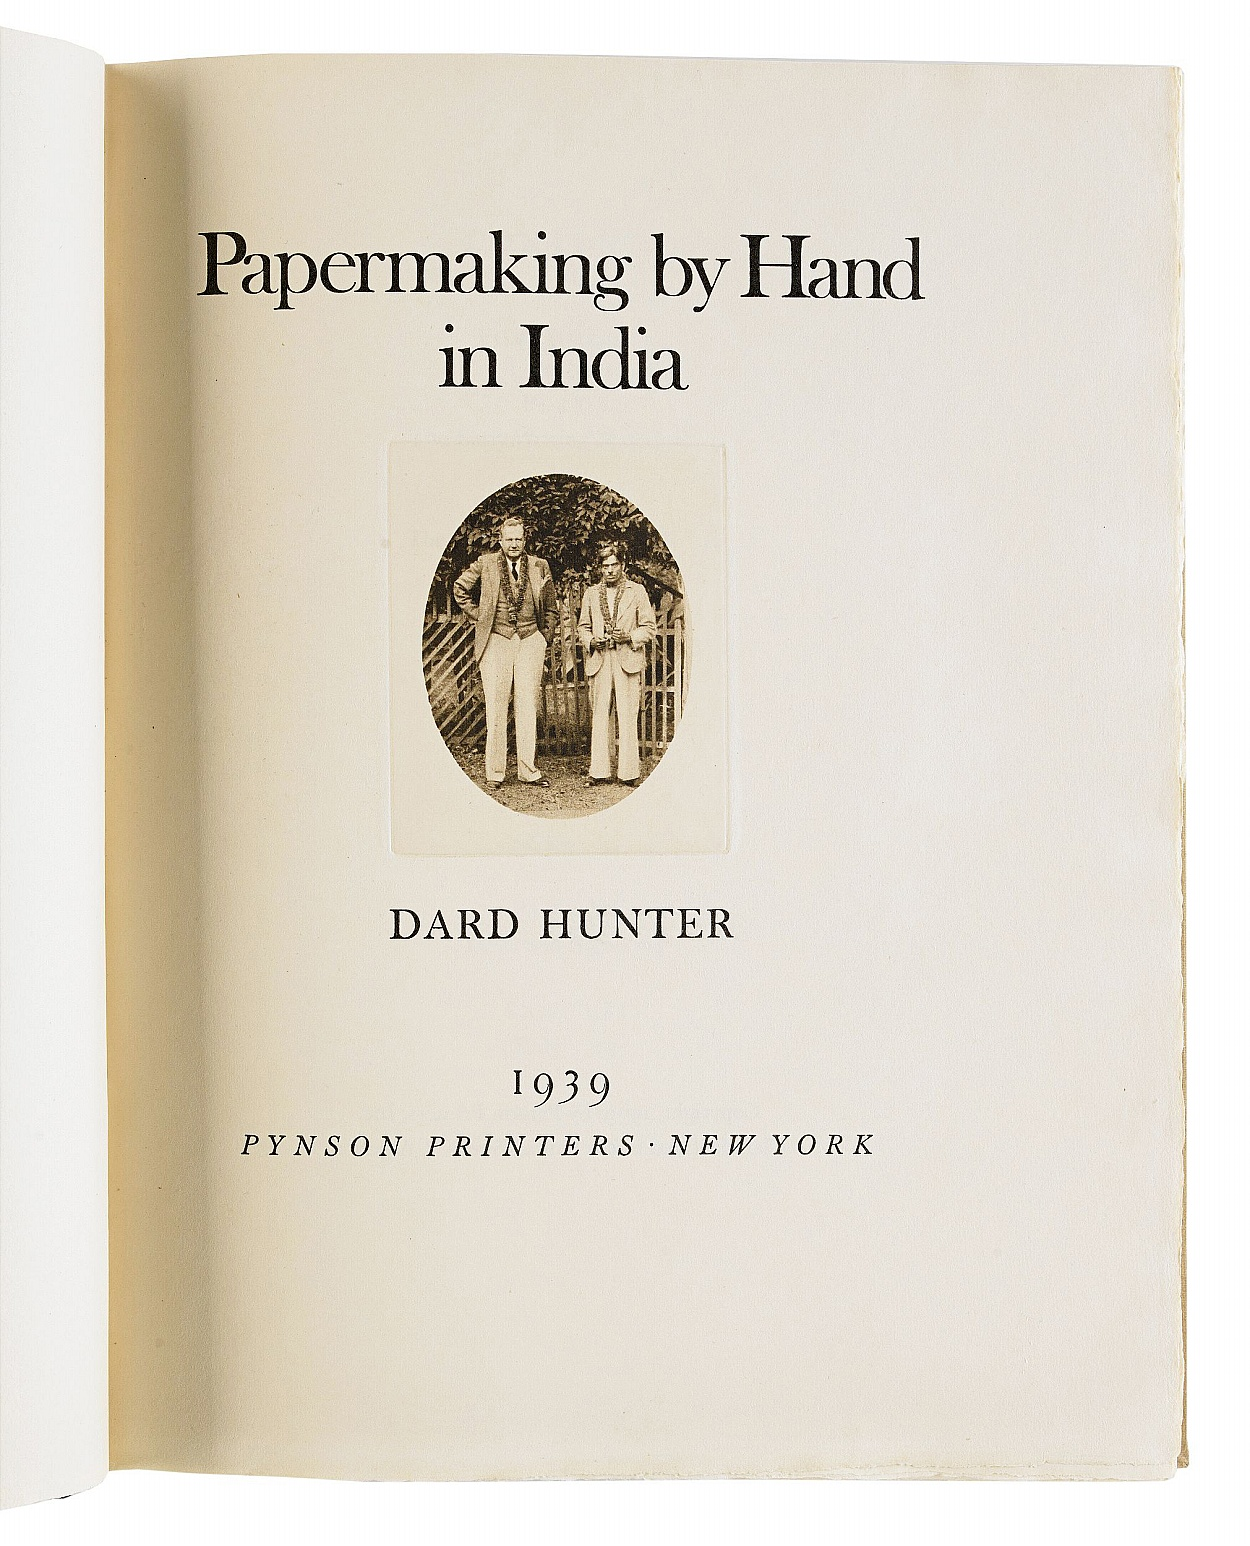 Dard Hunter on Papermaking by Hand in India